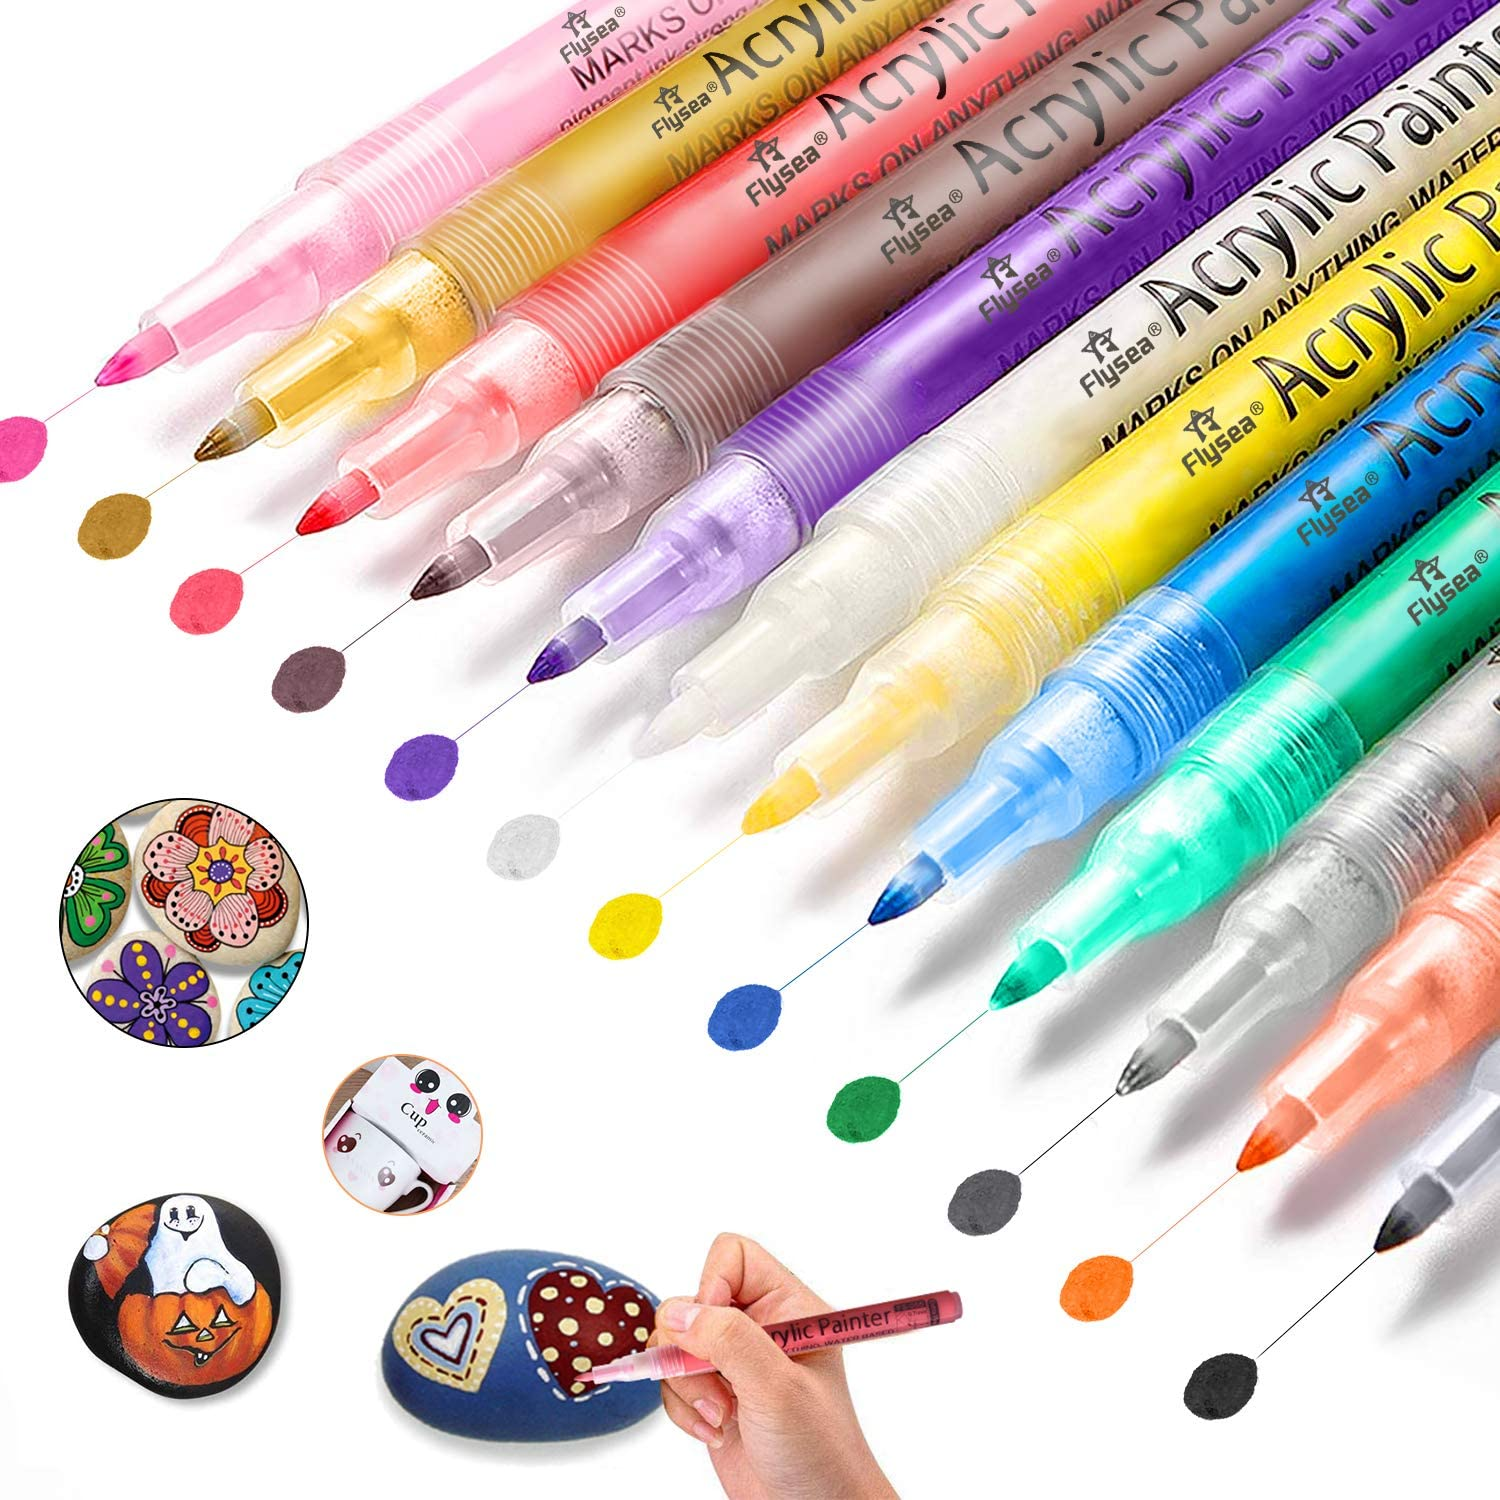 DIY Craft Projects Wood Glass Pebbles Stones 24 Colors Metallic Marker Pens Permanent Water Based Glass Rock Markers with 3mm Tip for Porcelain Gifort Acrylic Paint Pens Metal